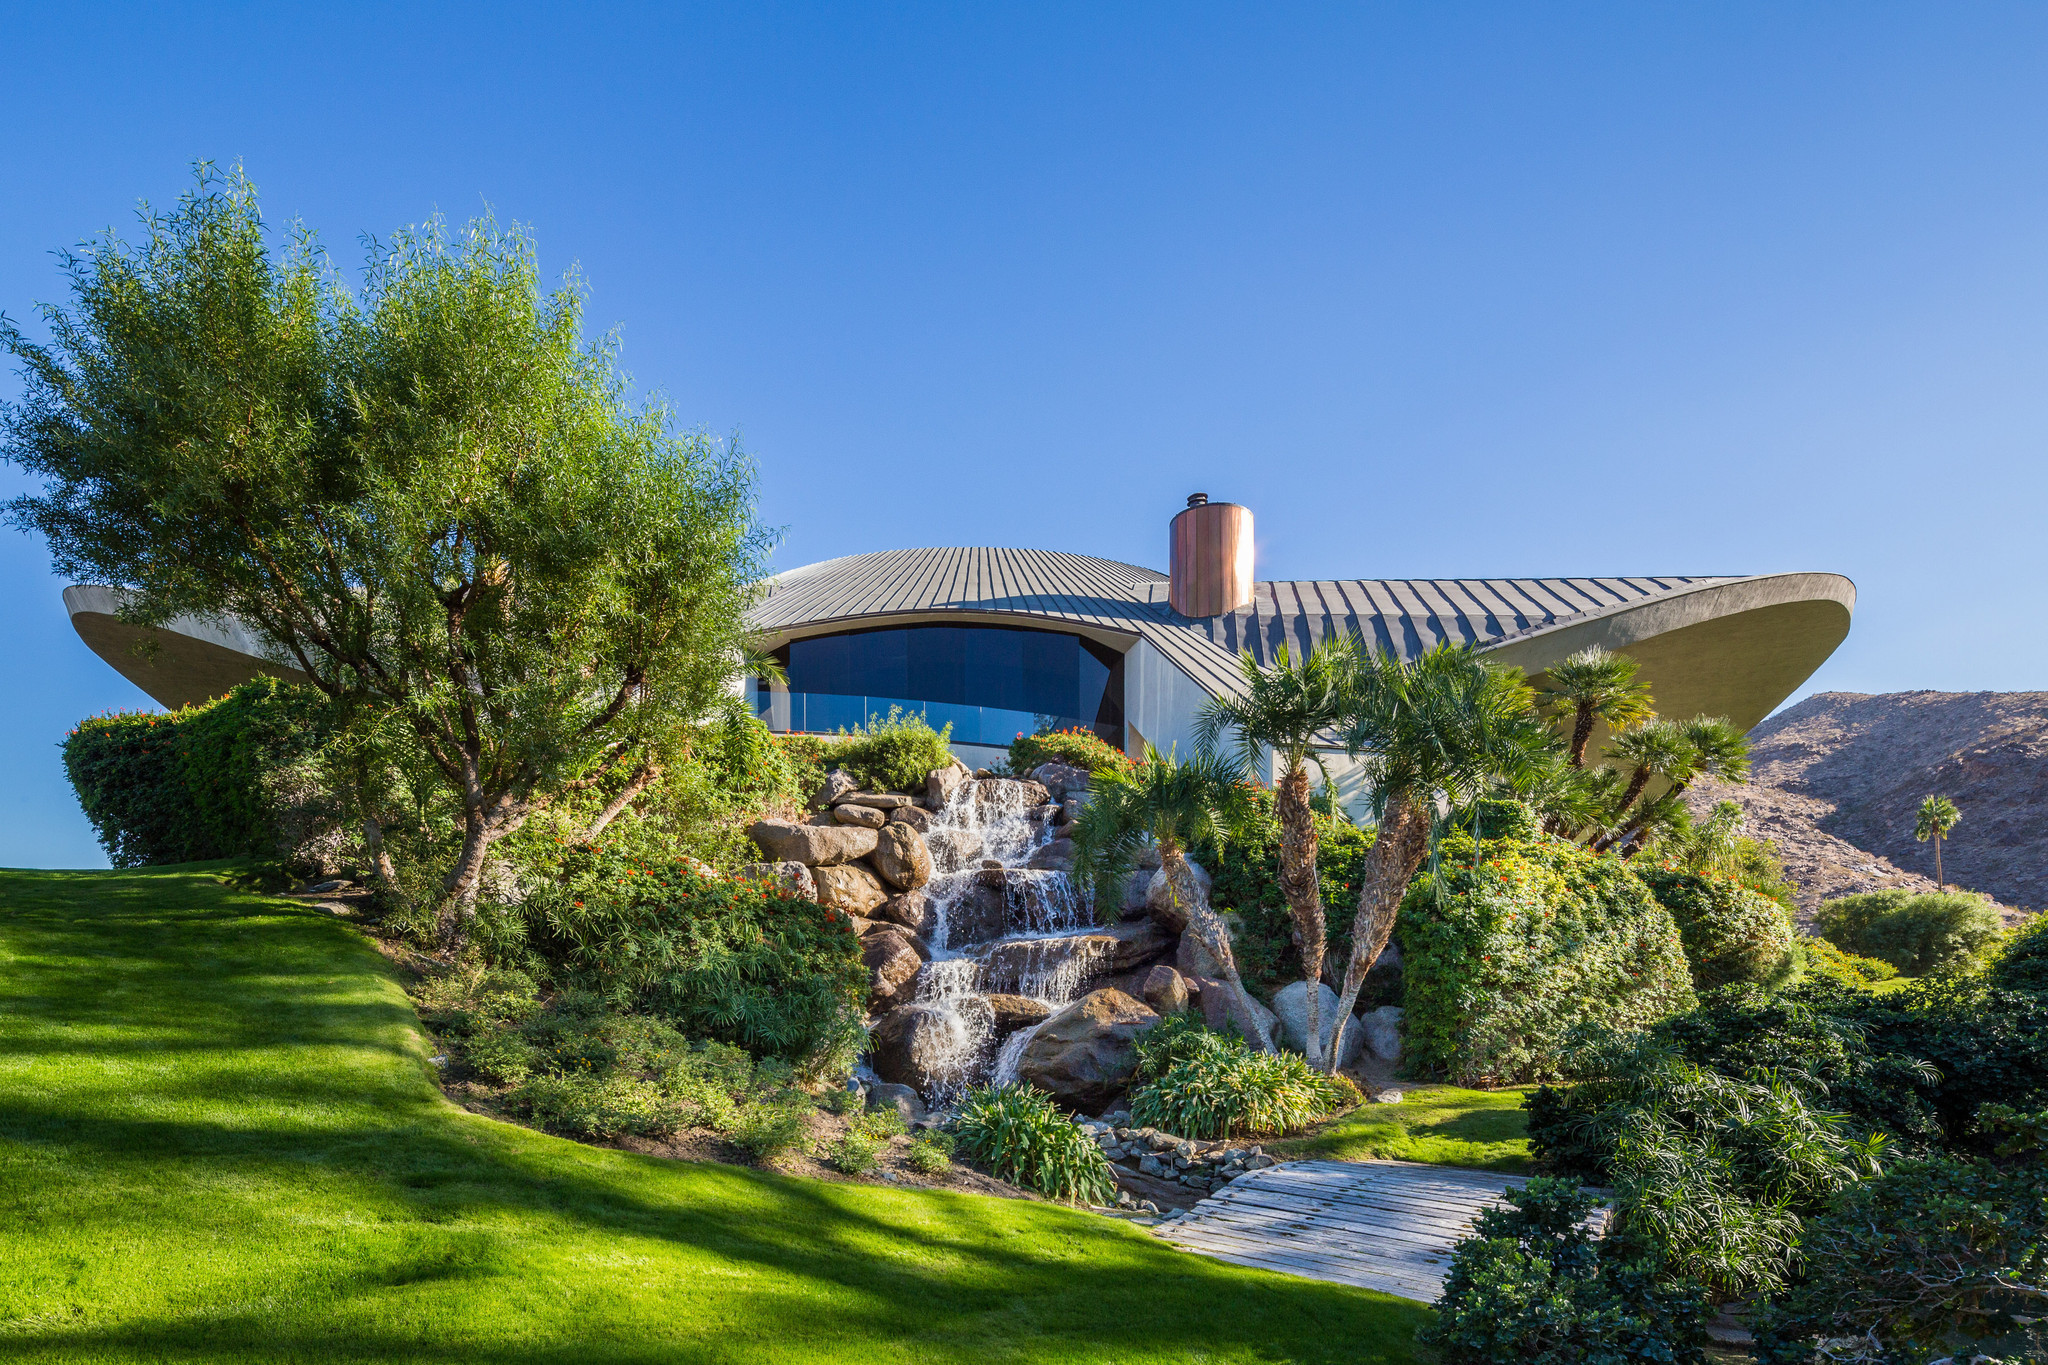 Louis vuitton finds palm springs oasis for cruise show for Palm springs for sale by owner